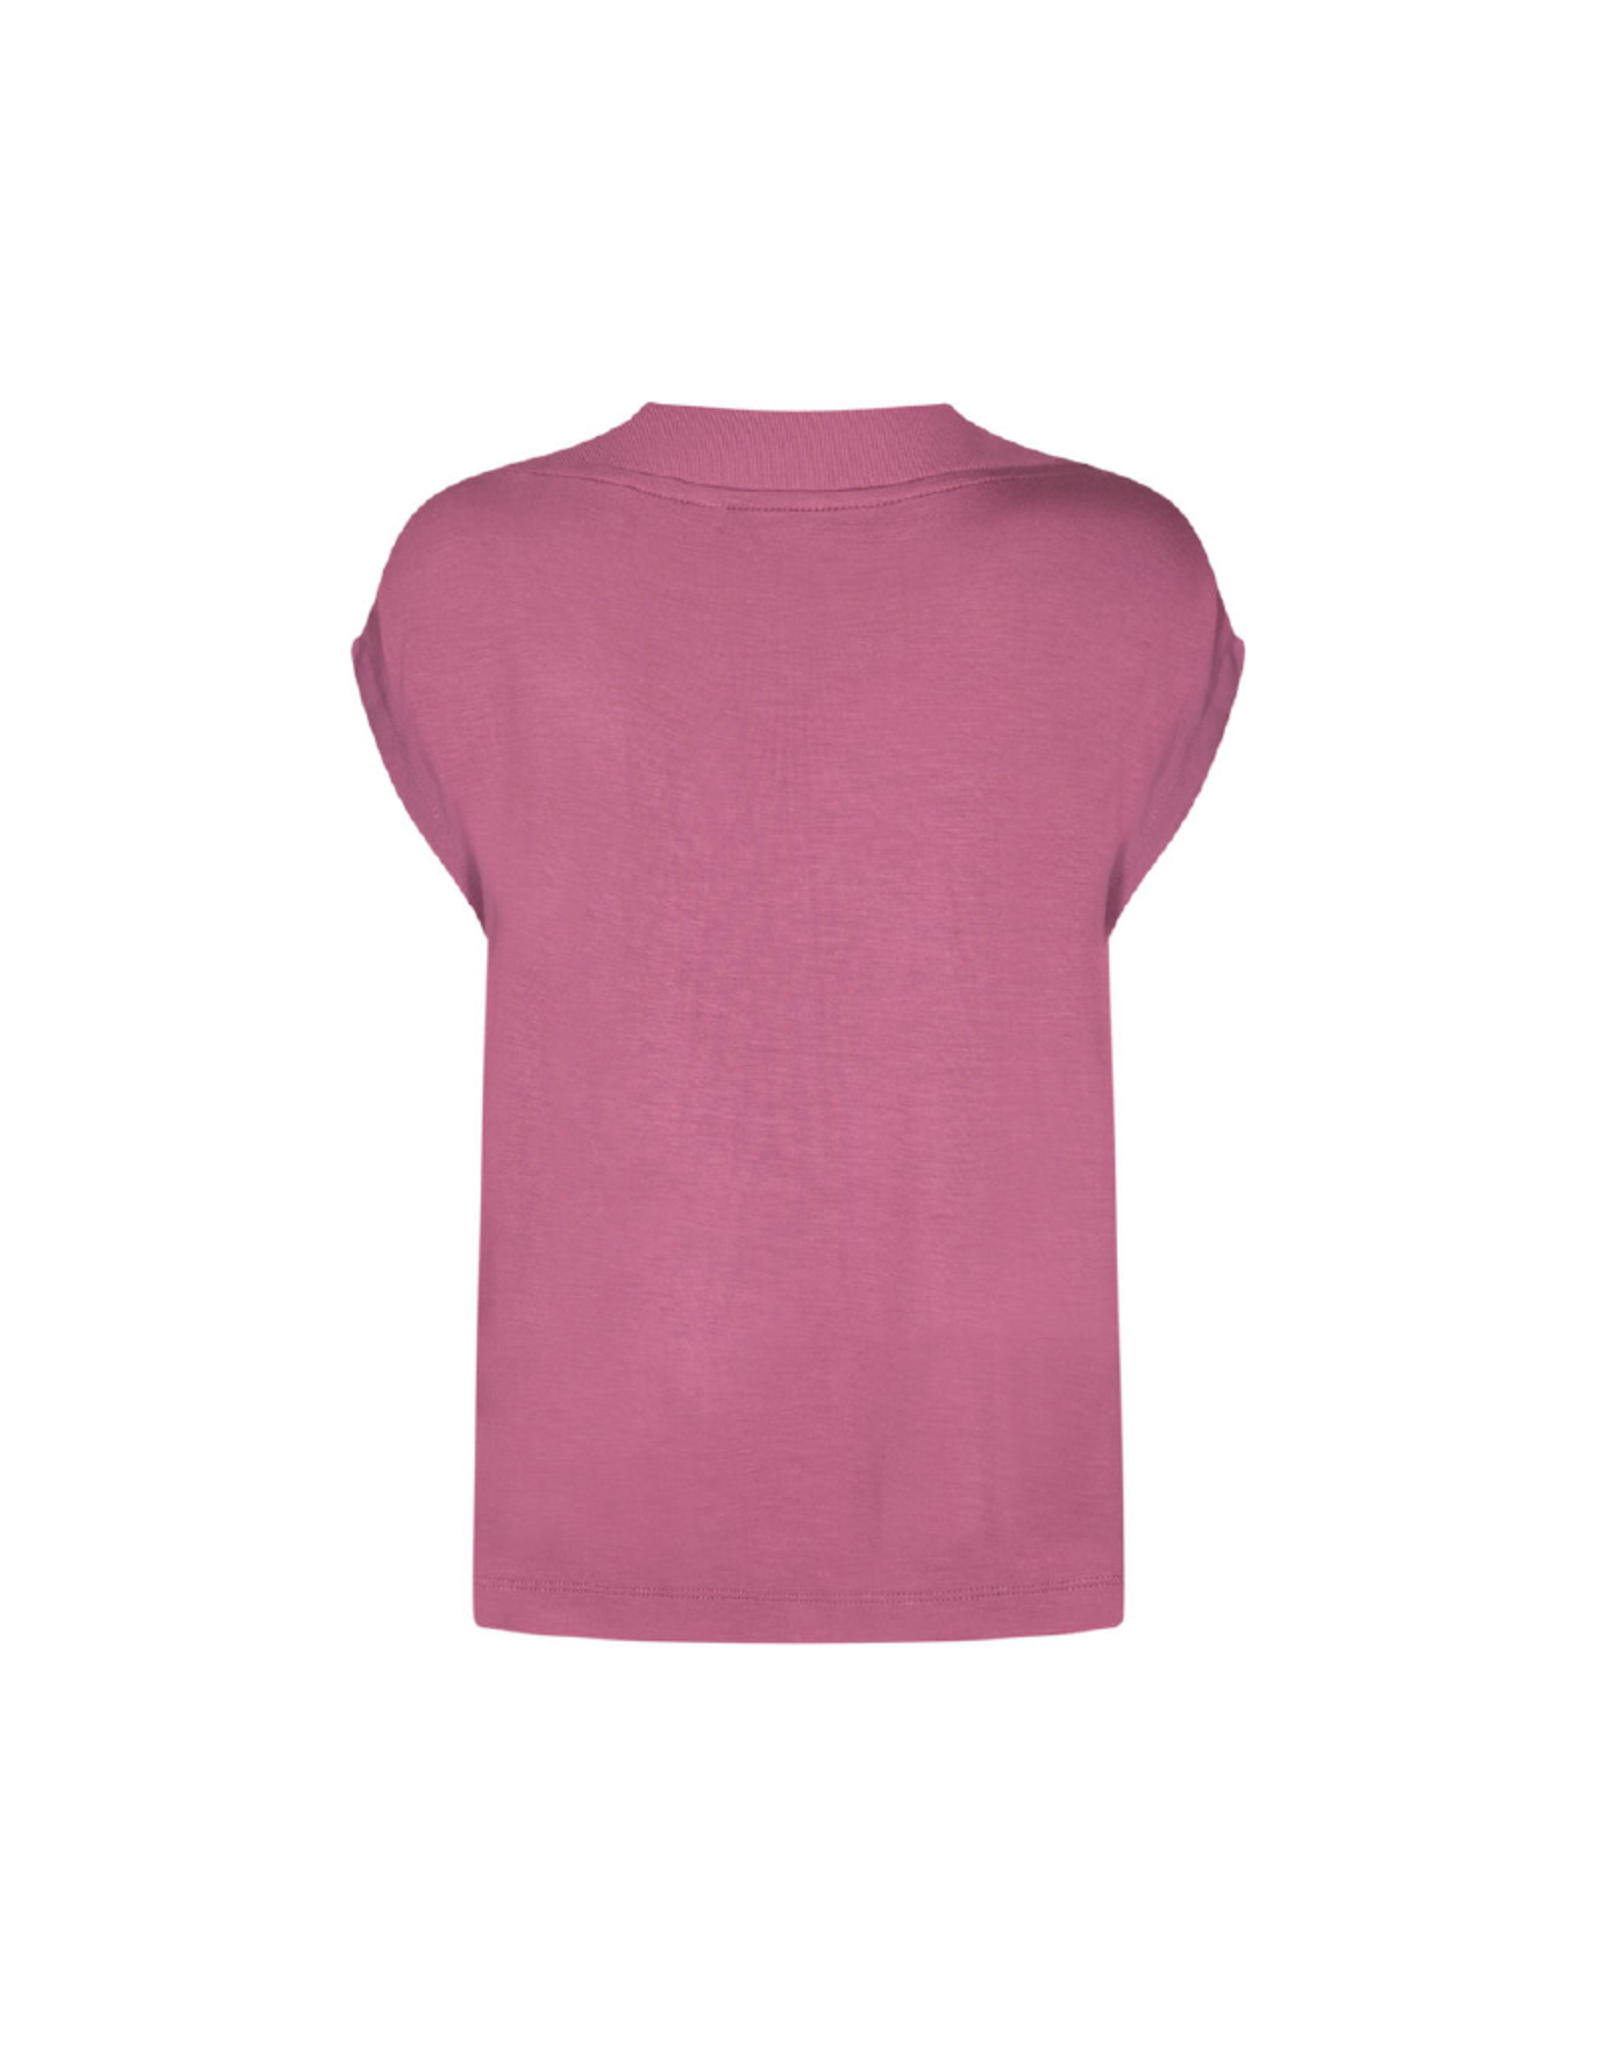 Soya Concept Thick V-Neck Cap Sleeve Tee